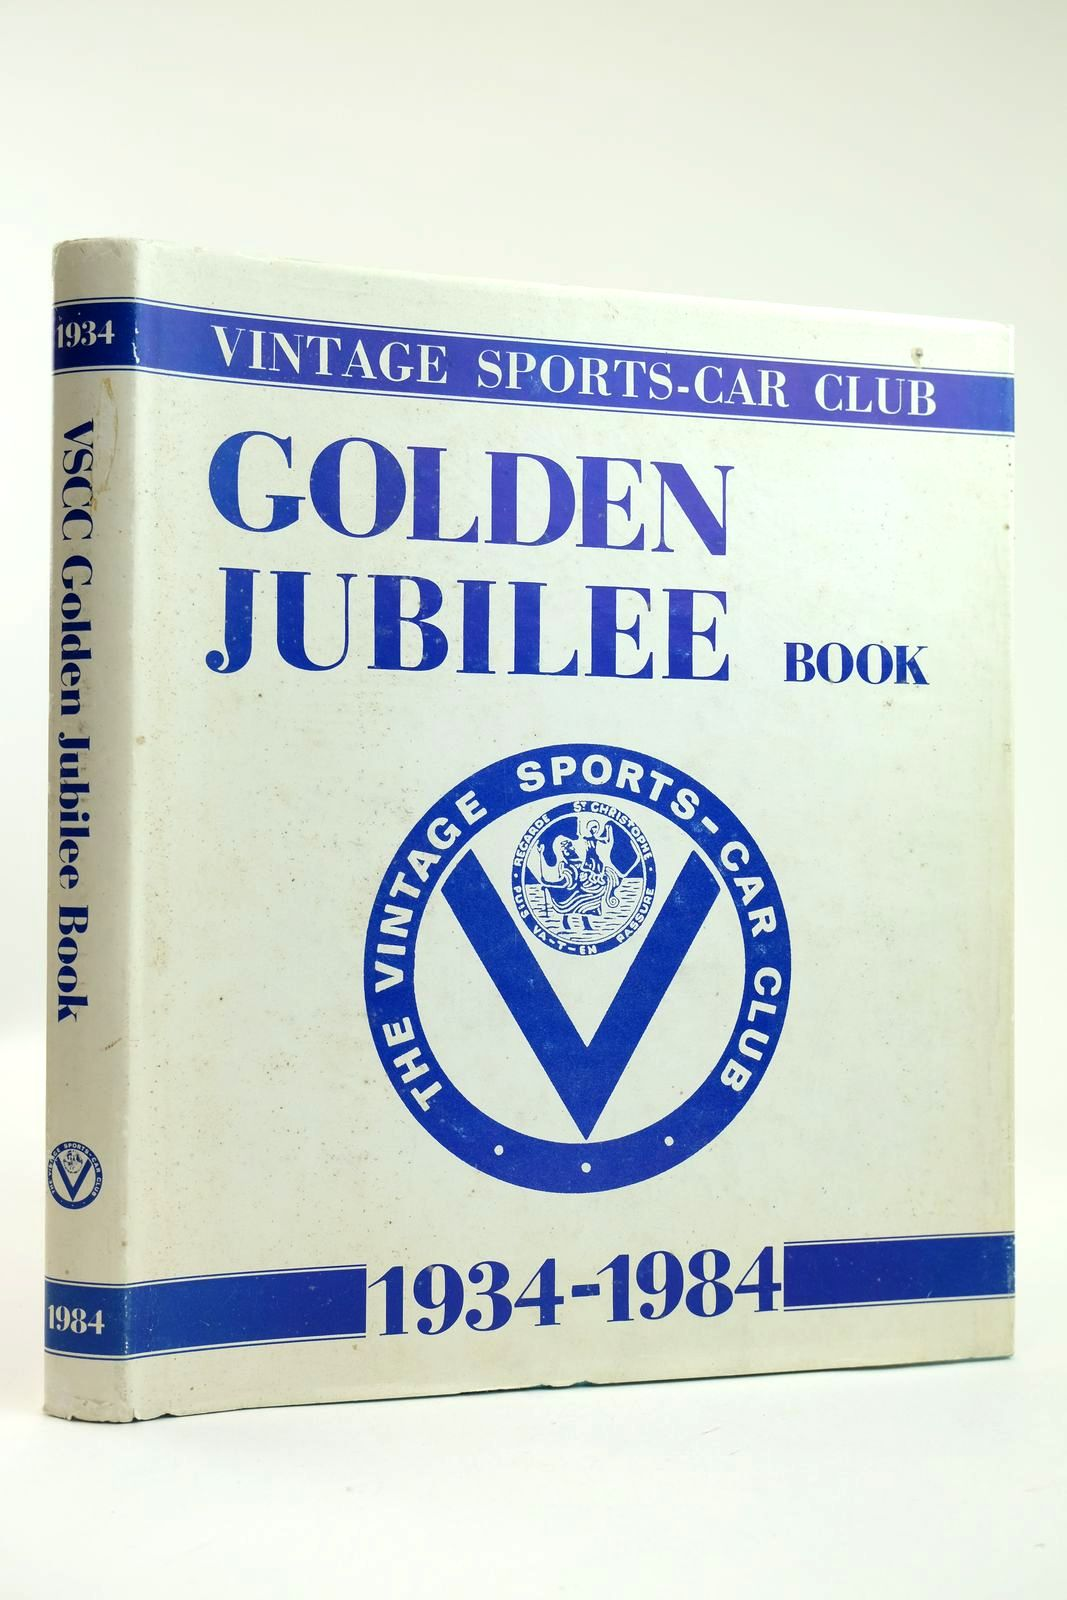 Photo of THE VINTAGE SPORTS-CAR CLUB GOLDEN JUBILEE BOOK 1934-1984- Stock Number: 2132267